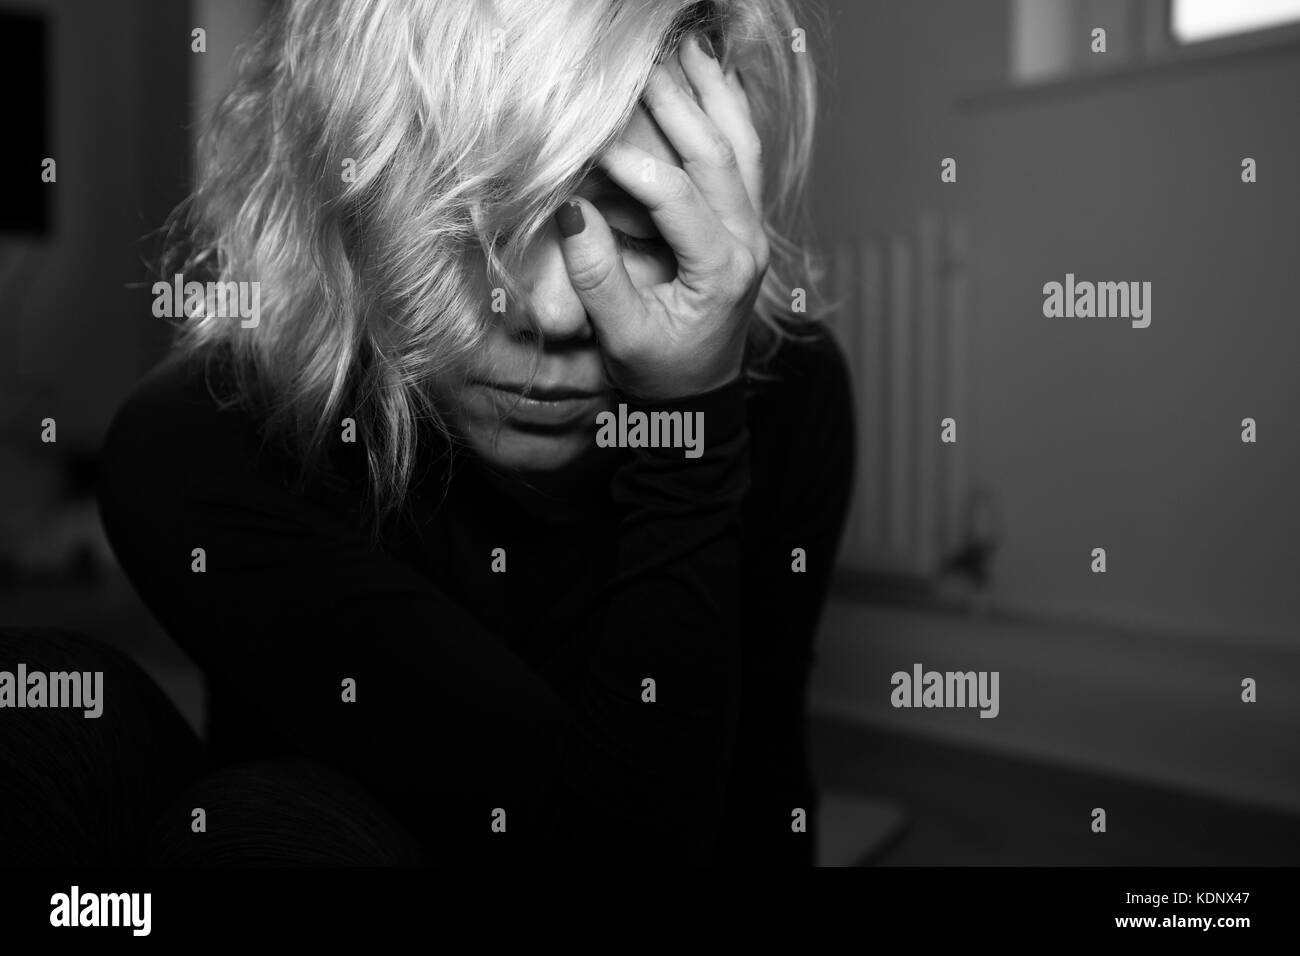 Woman holds her head in her hand.  Blonde woman in despair depressed tired. - Stock Image